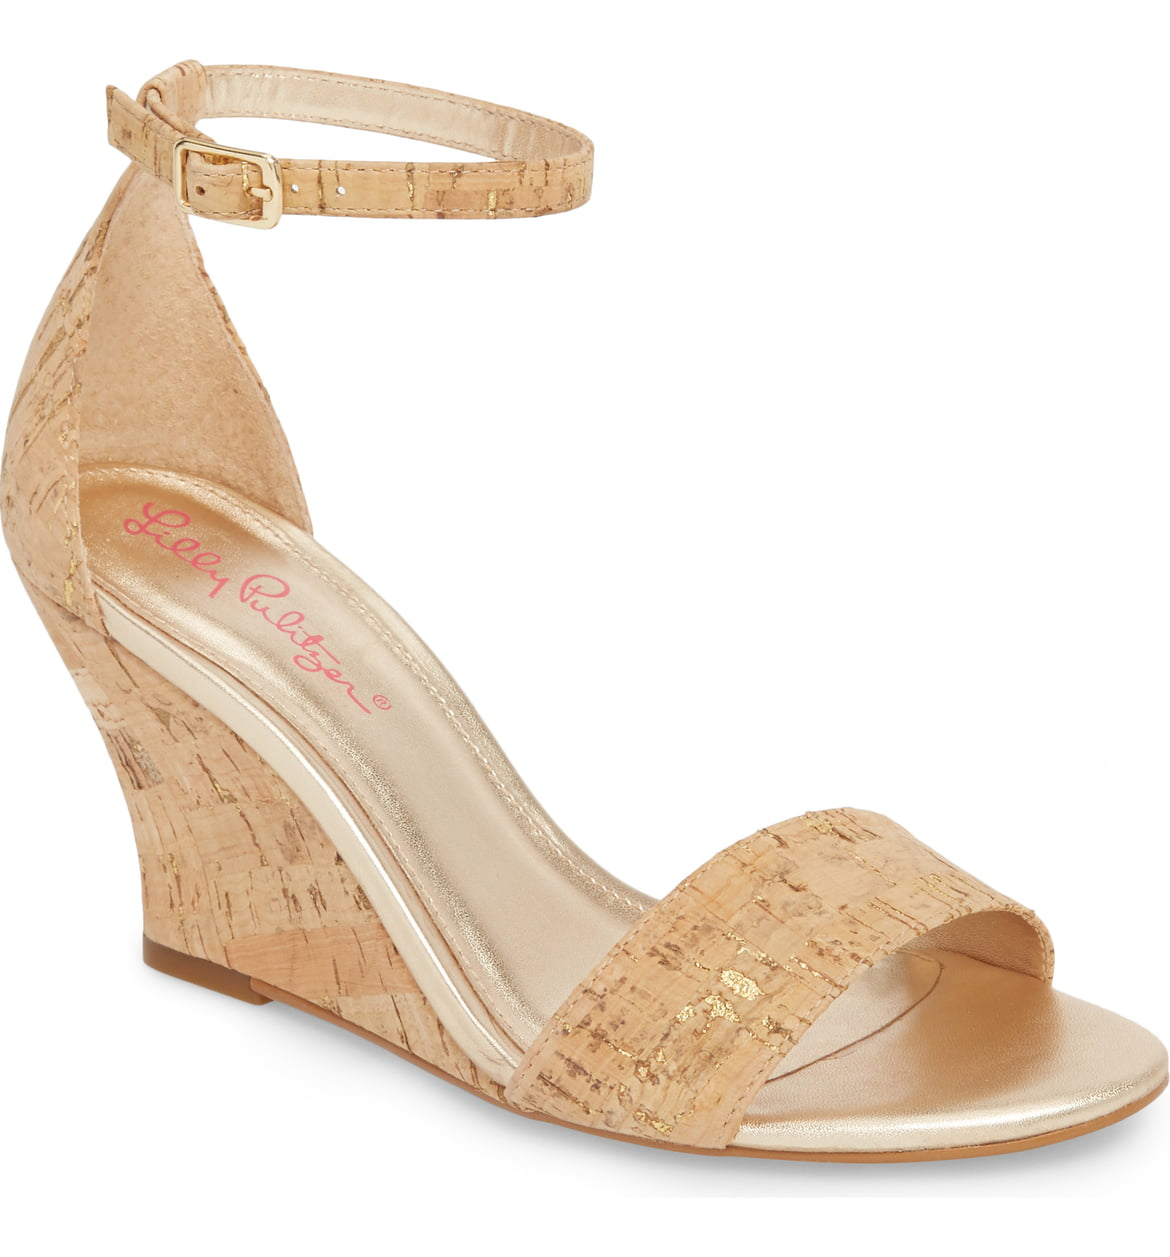 Bridgette Wedge Sandal